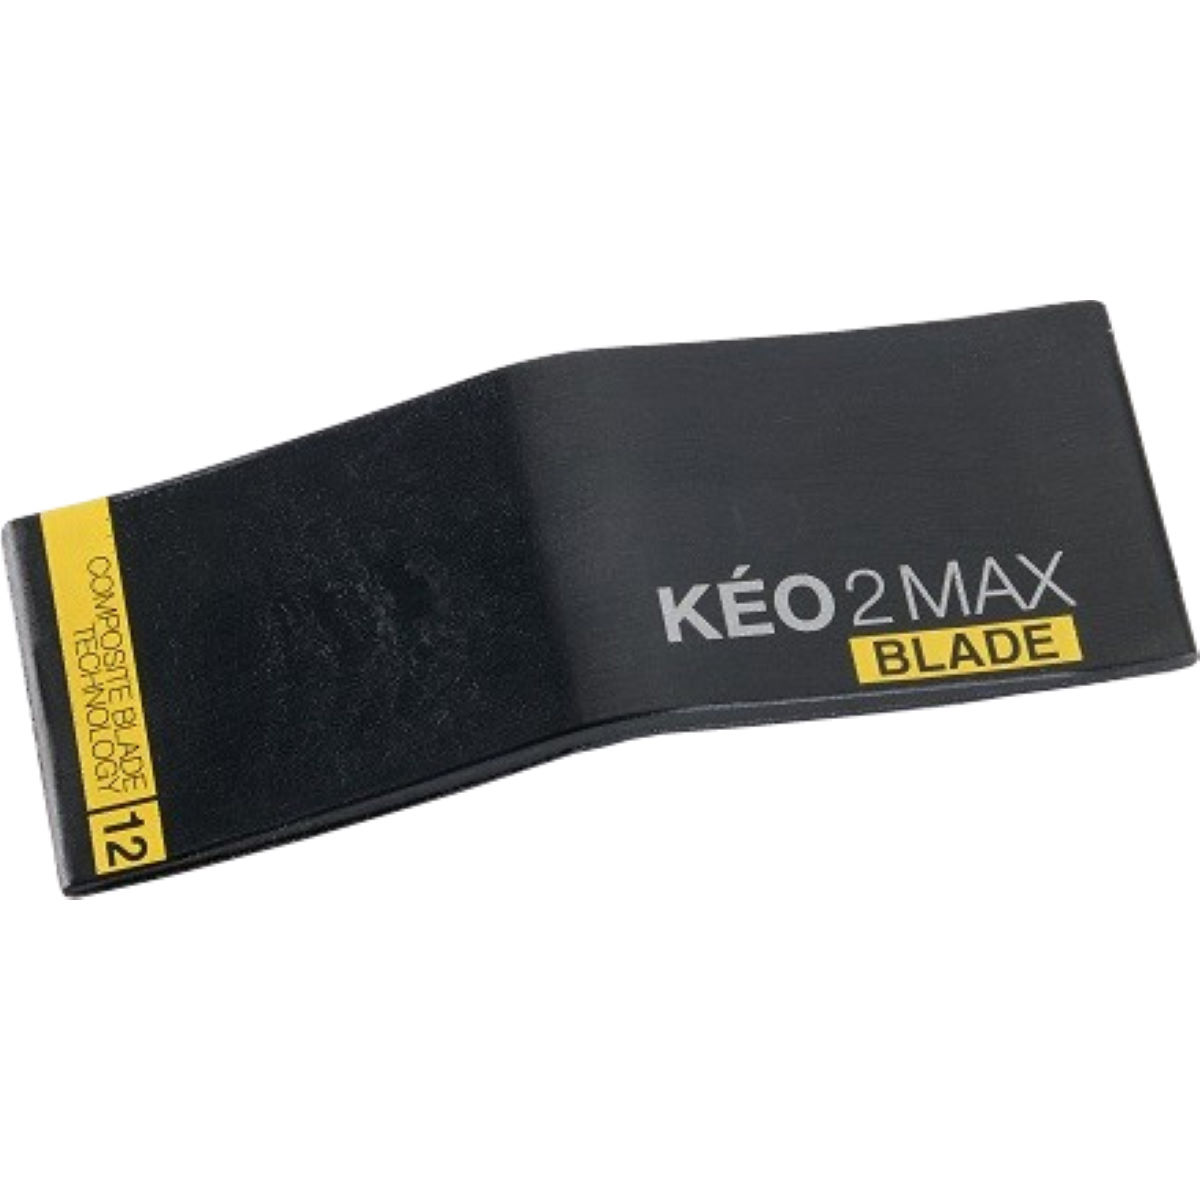 Ressorts de tension Look Keo 2 Max Blade - 12Nm Jaune/Noir